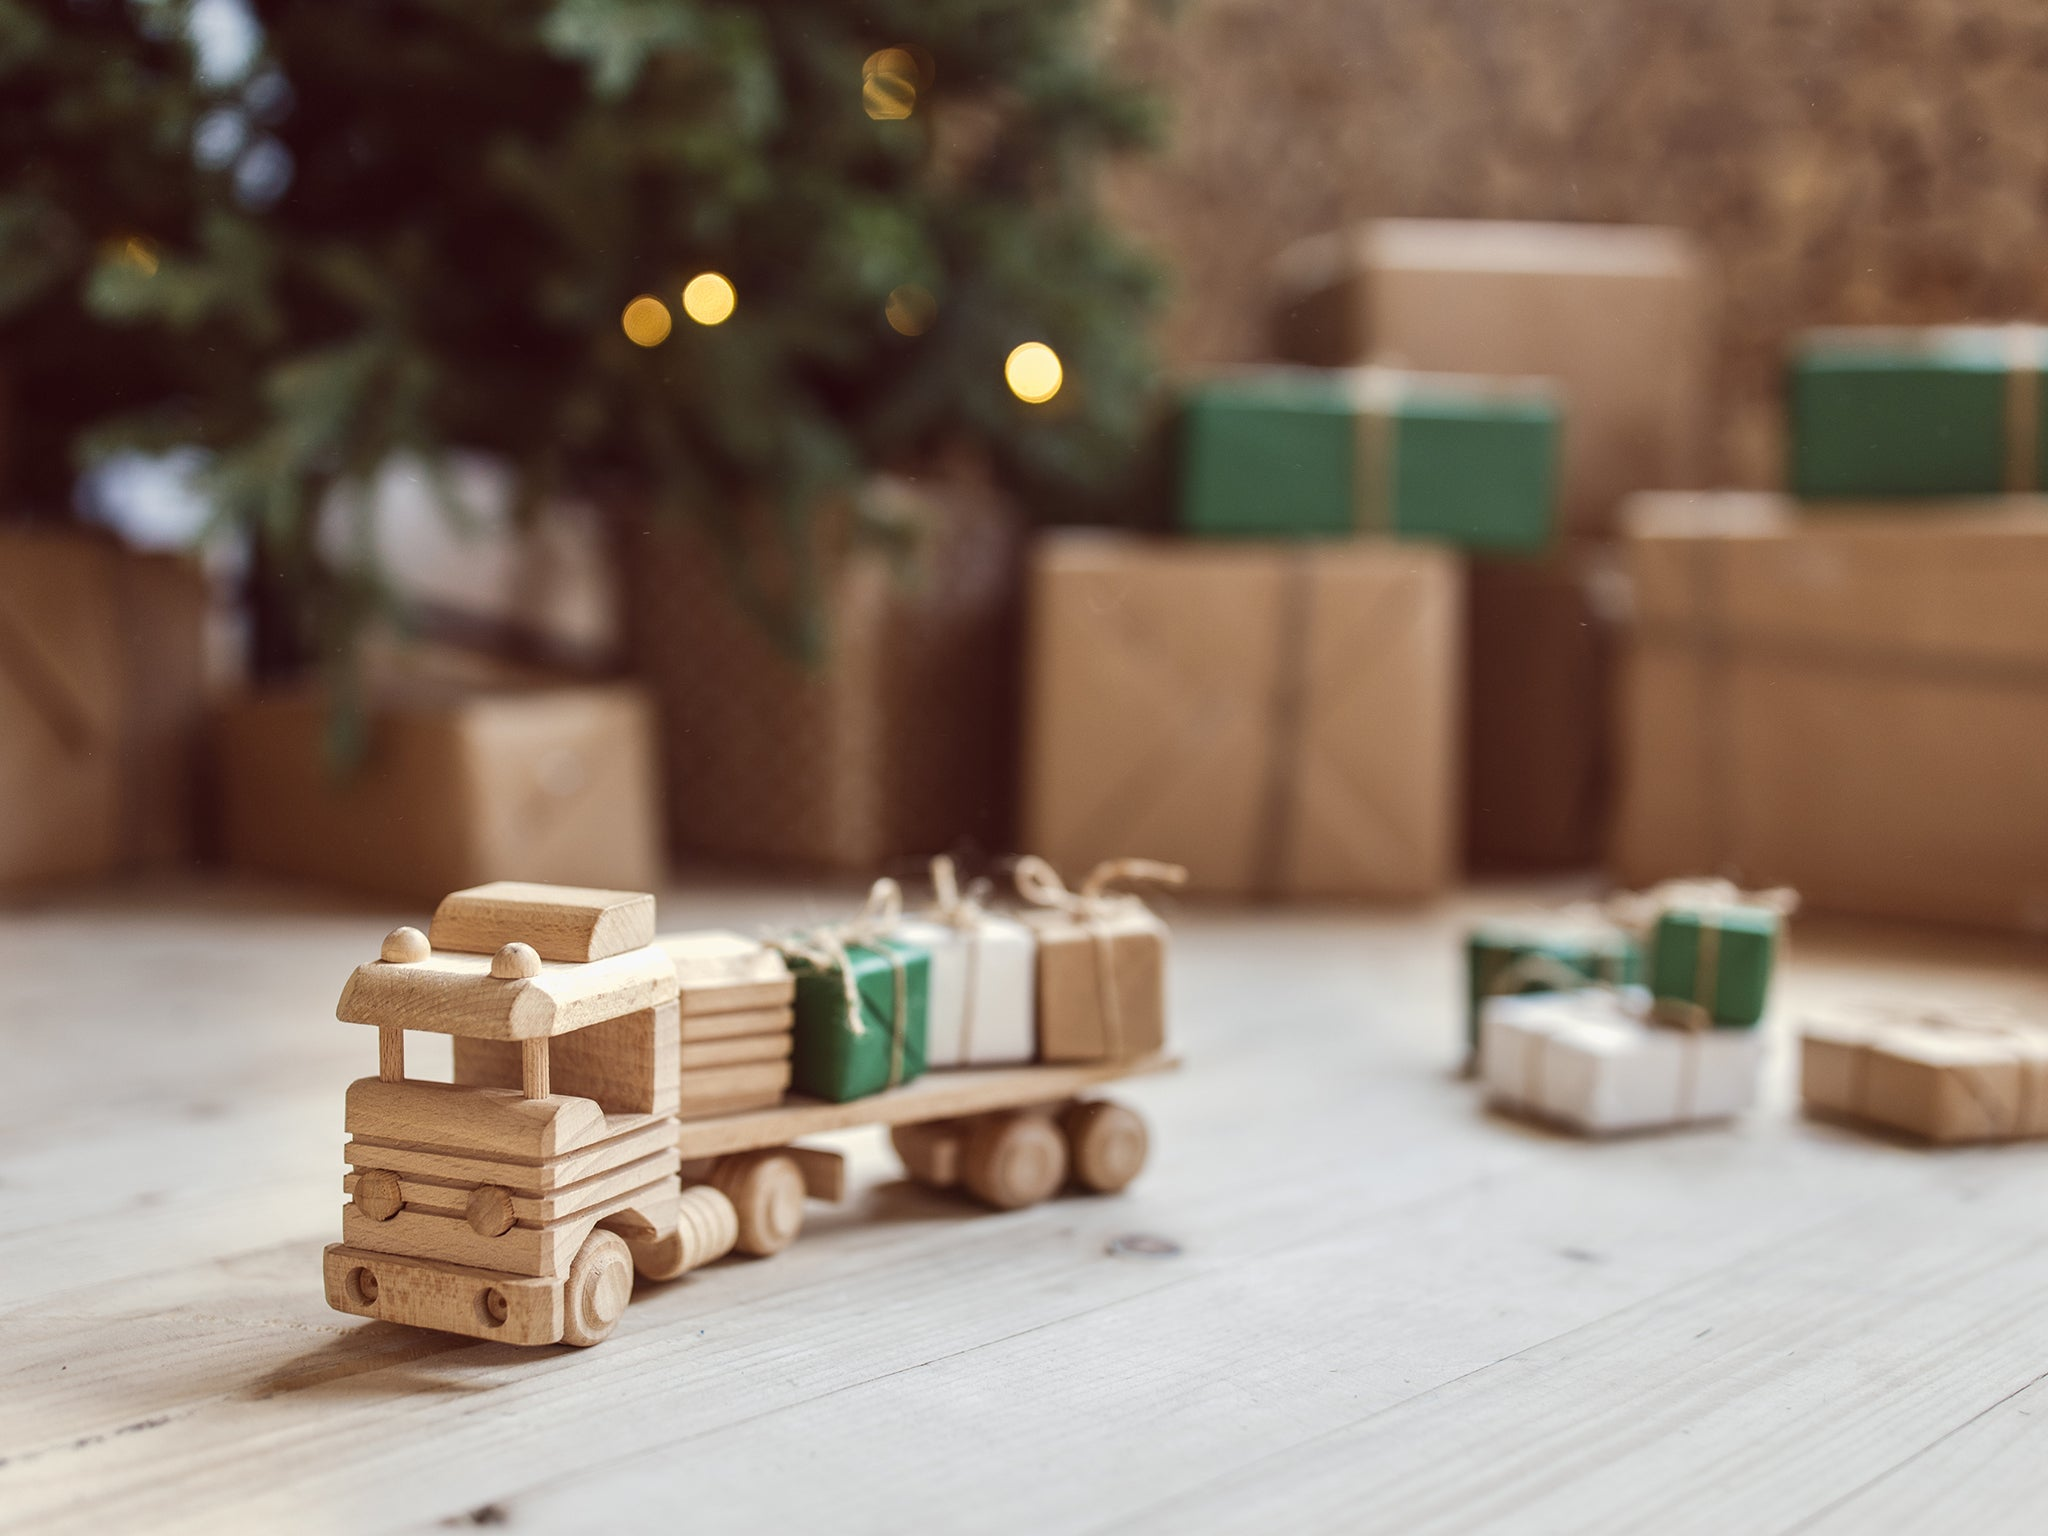 Finding sustainable, plastic-free toys doesn't have to cost the Earth